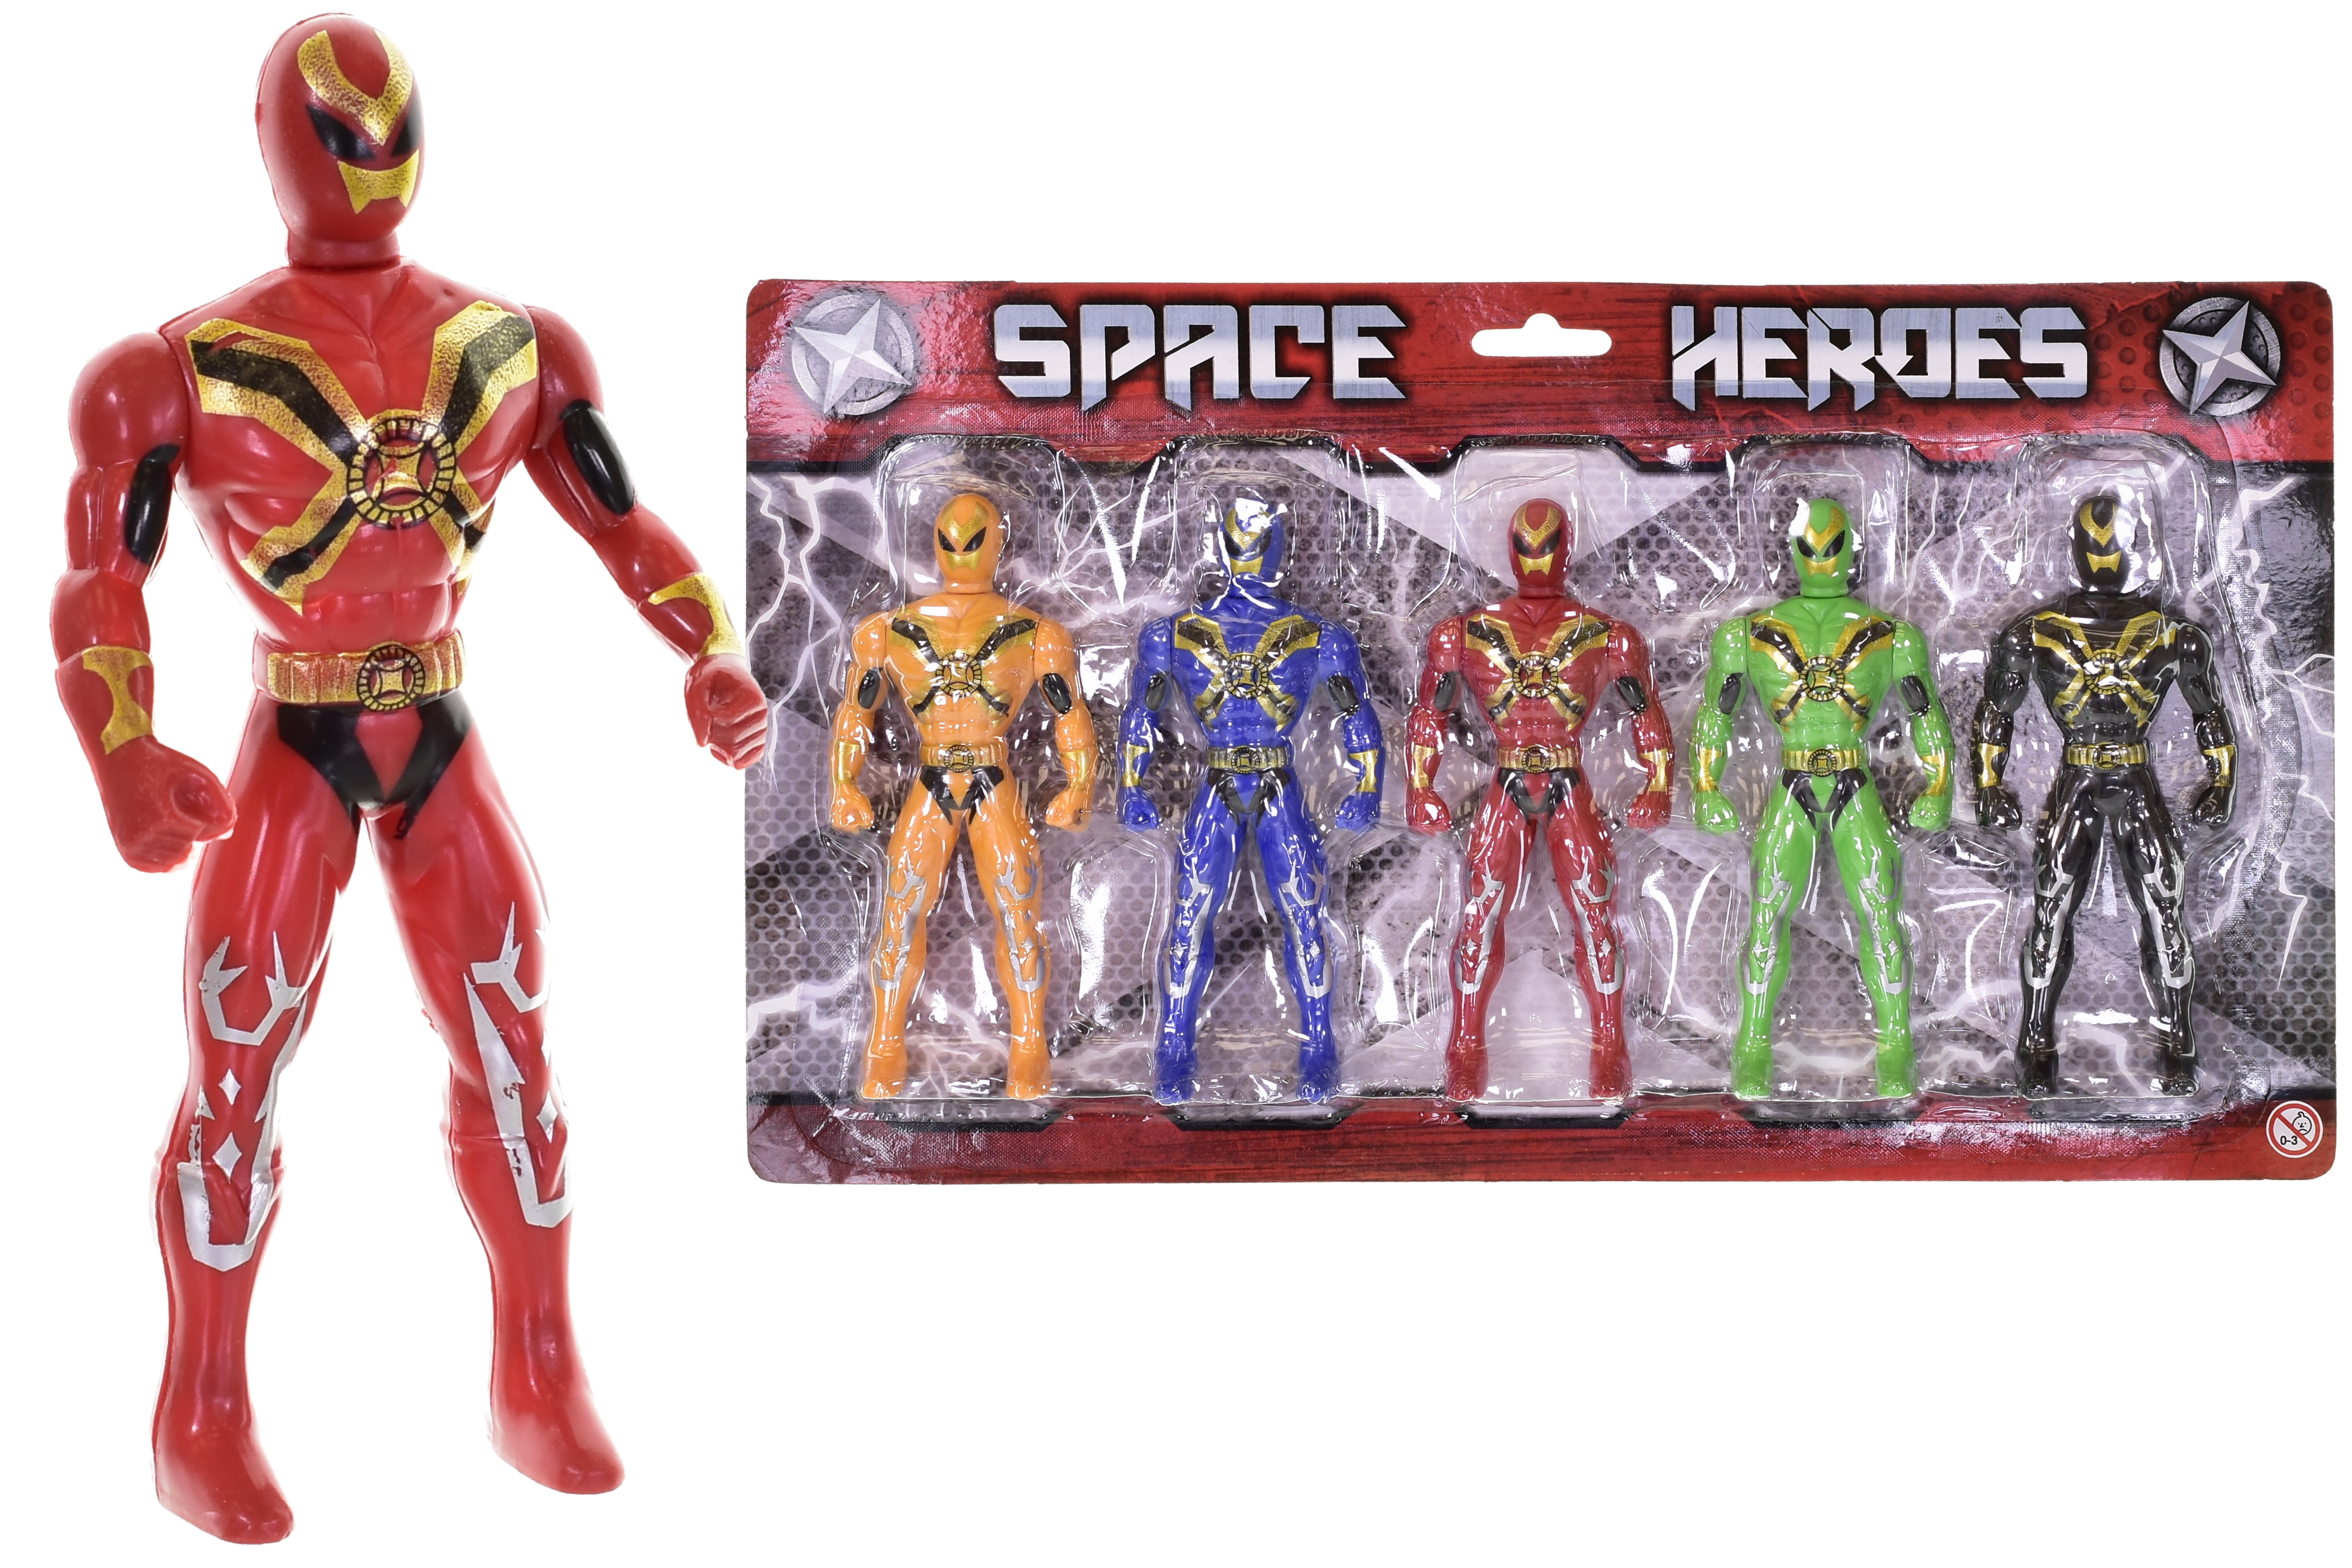 5pc Action Figures On Blistercard